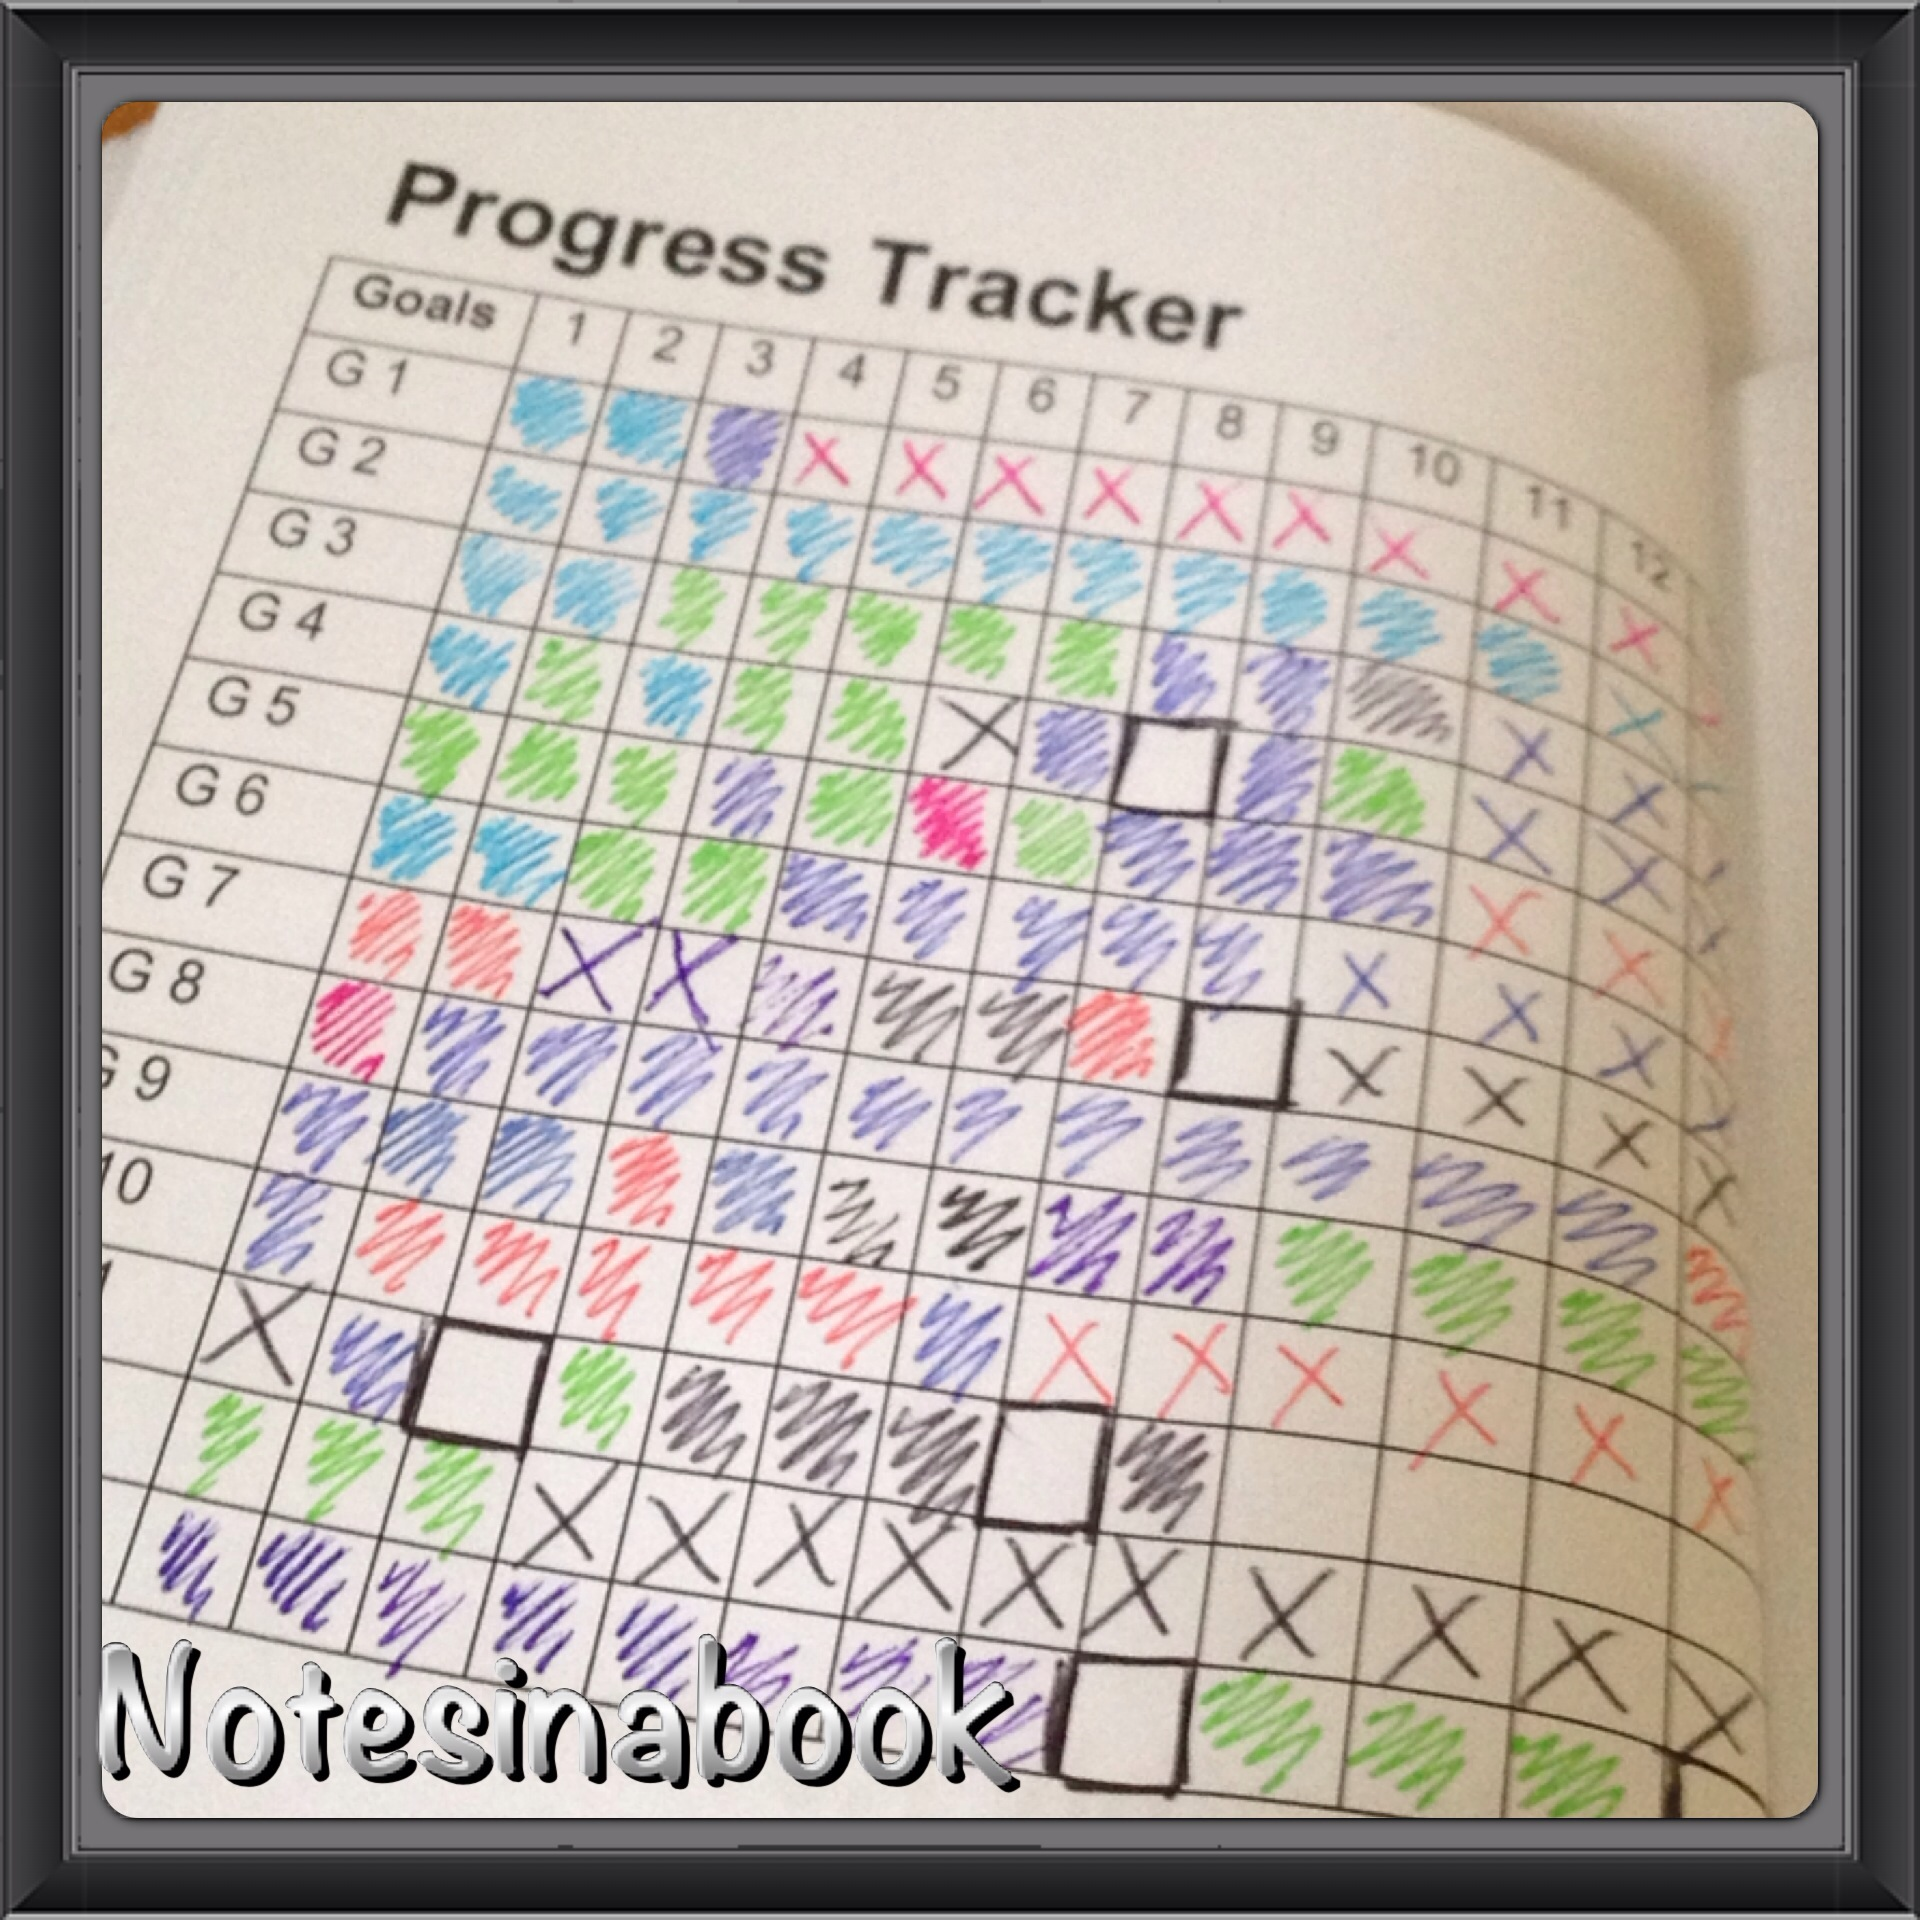 organisational notebooks notes in a book i coloured coded my progress tracker the reviews for example my first review was completed in light blue this can be seen in the right hand corner of